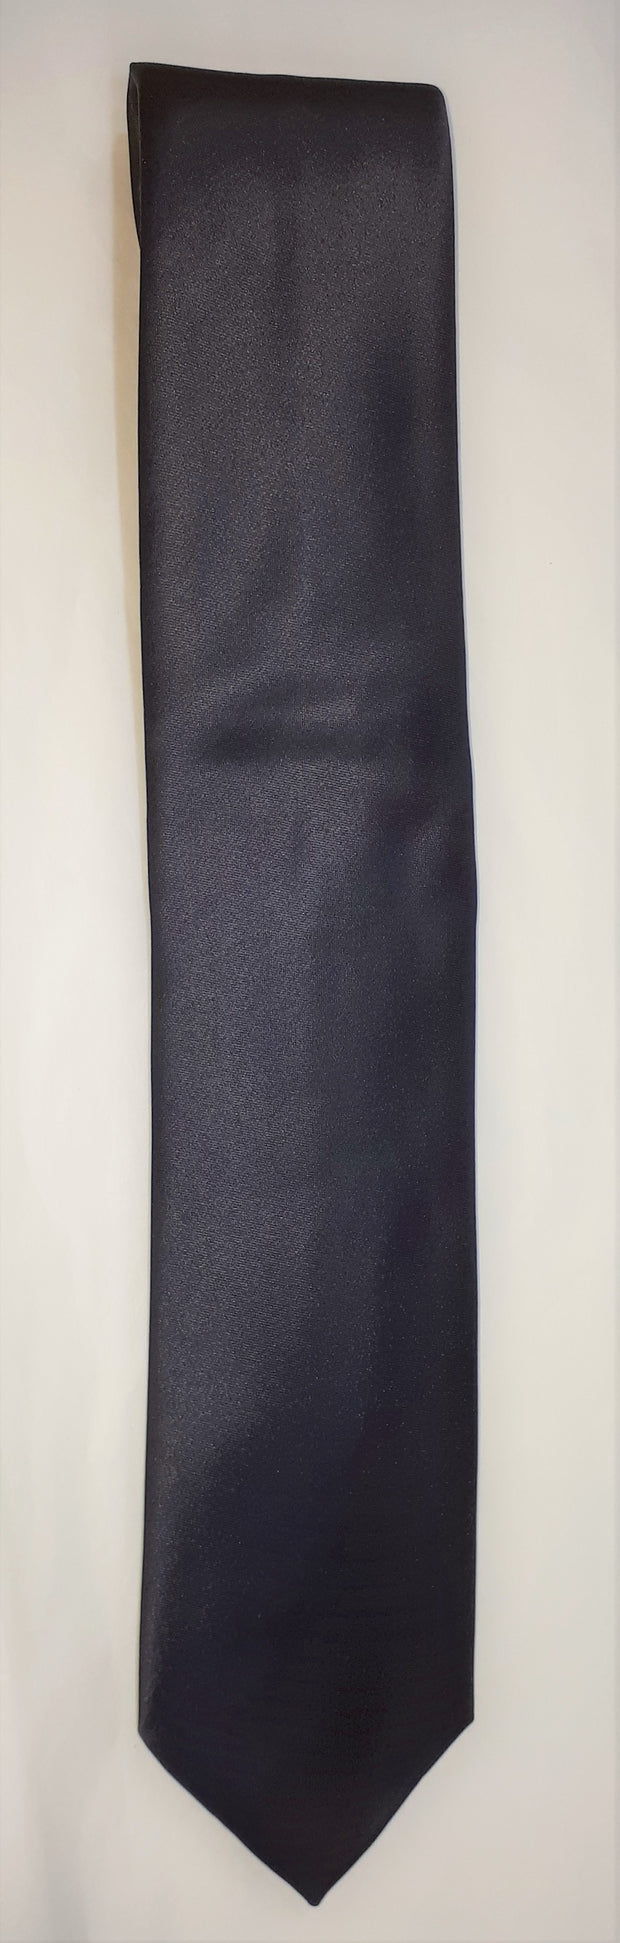 FORMAL SATIN TIE NAVY